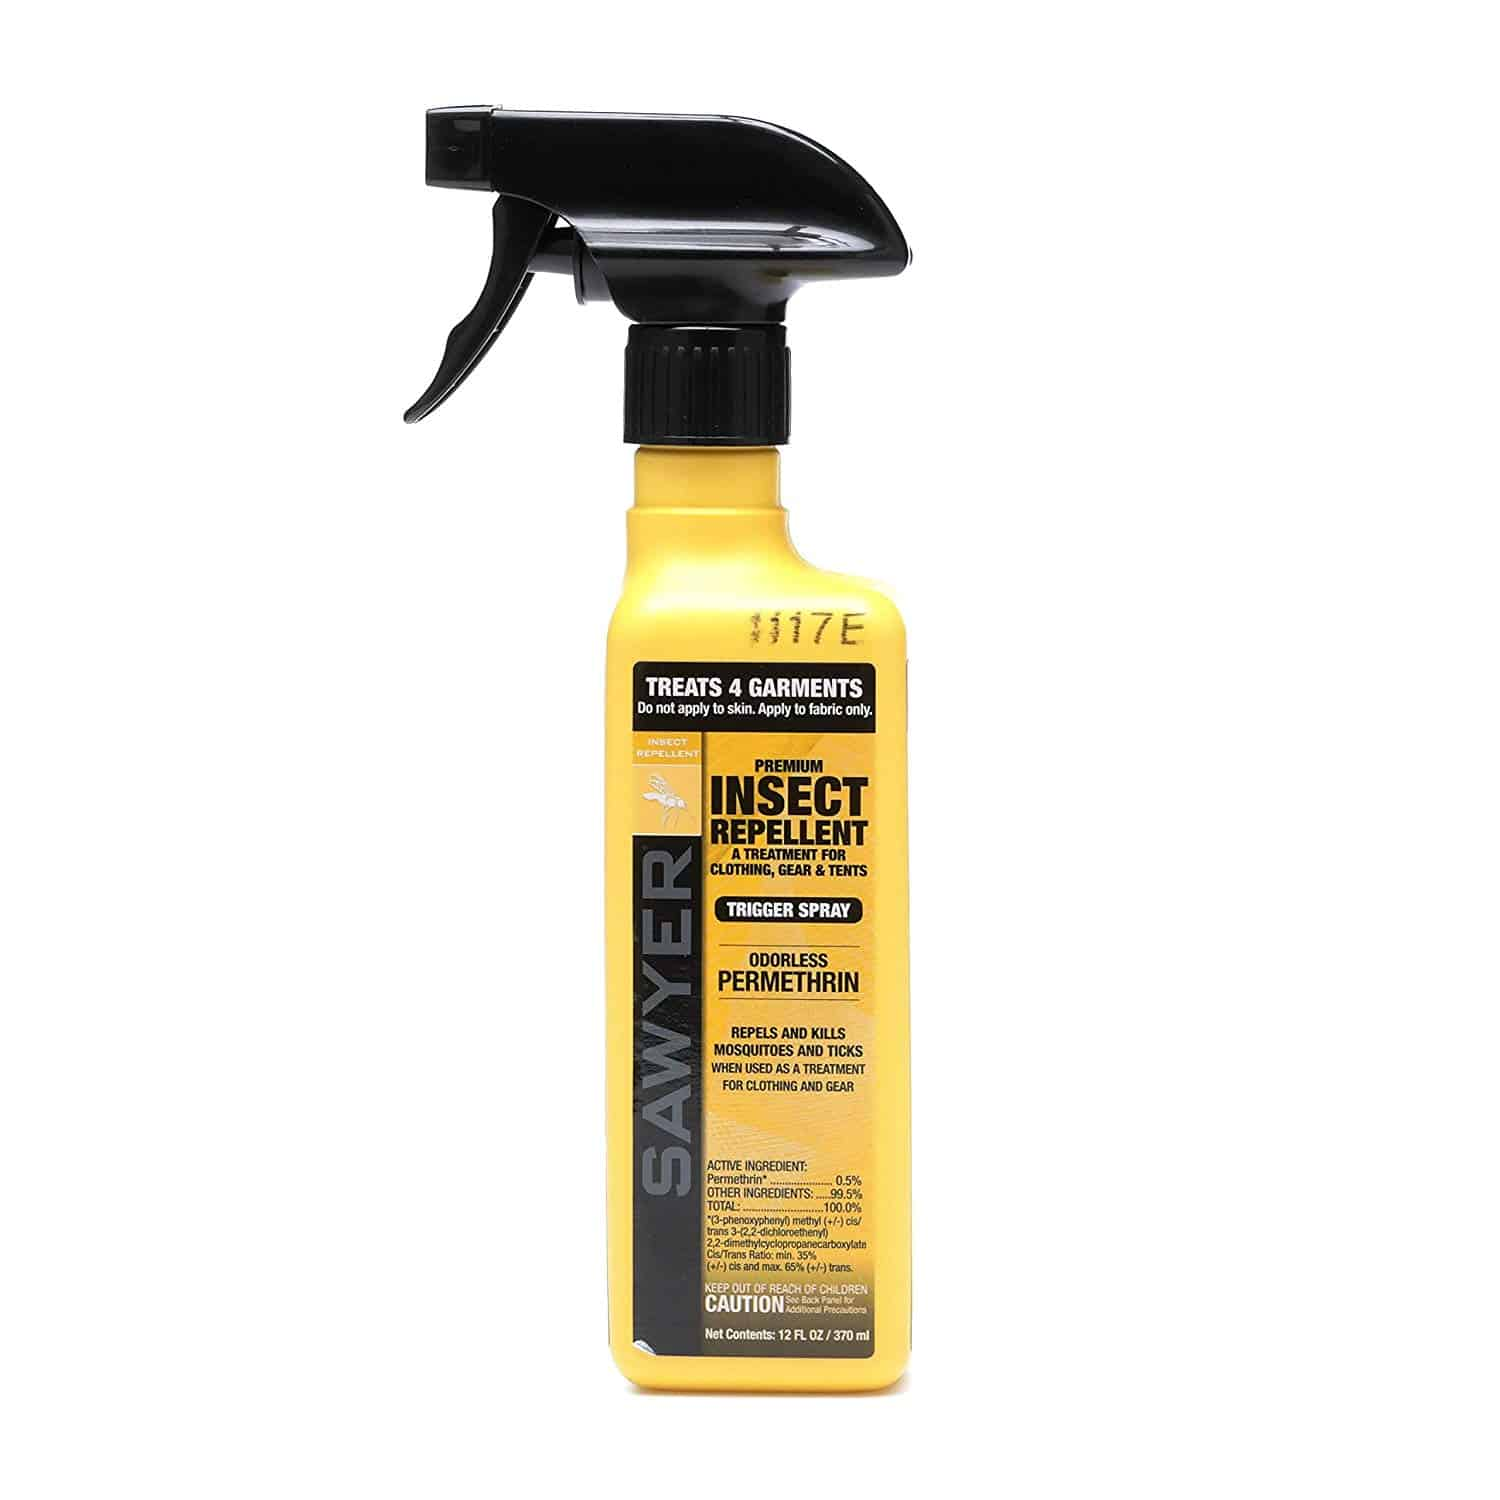 Sawyer Premium Permethrin Insect Repellent Review